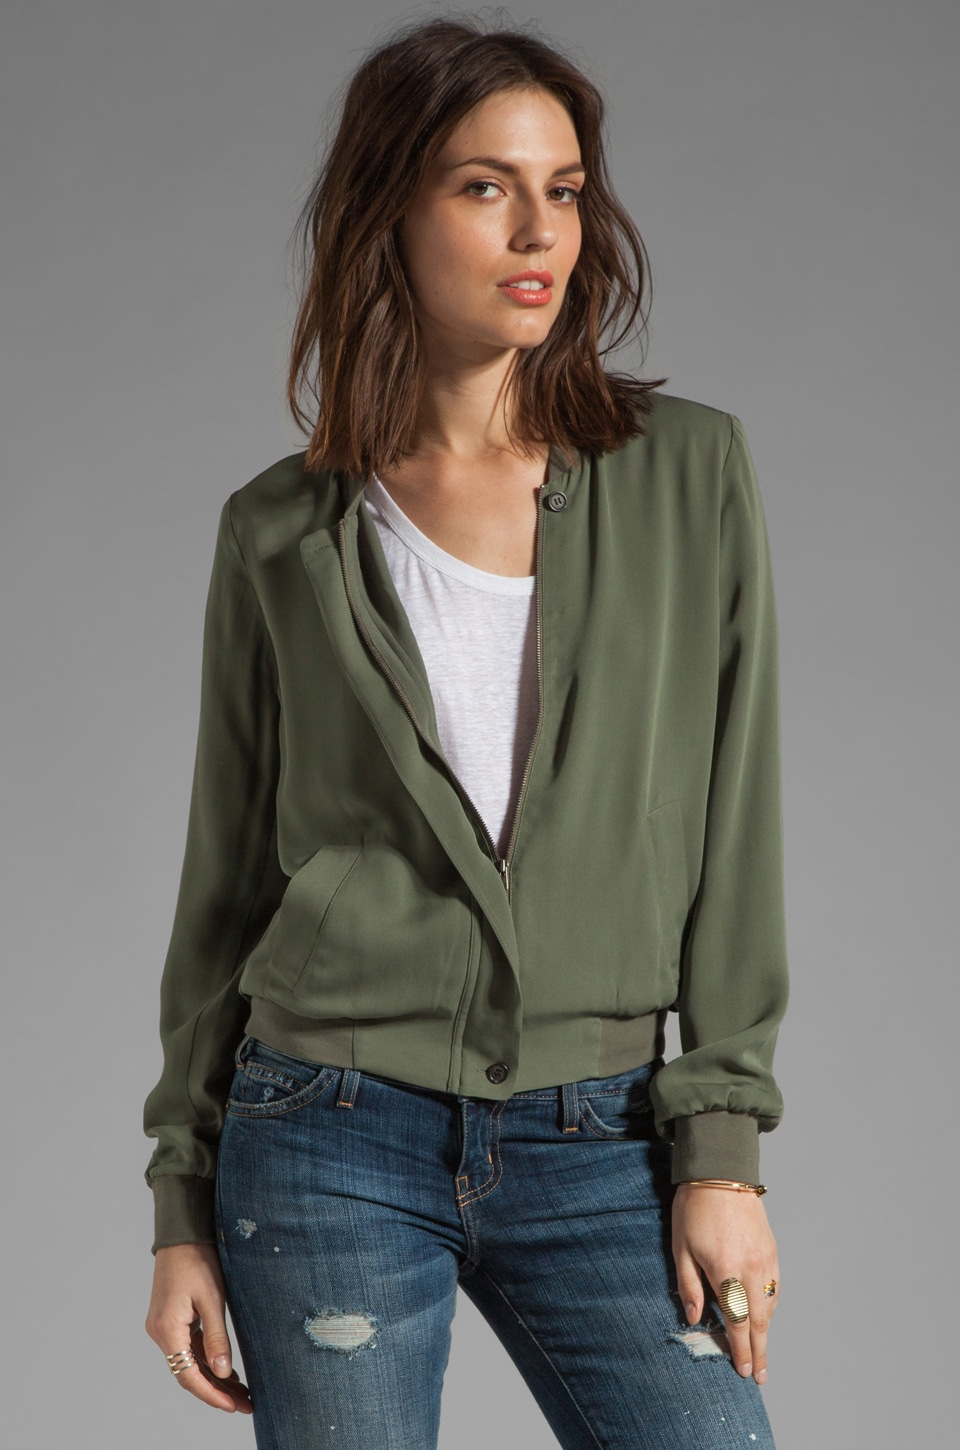 Joie Empire Jacket in Fatigue